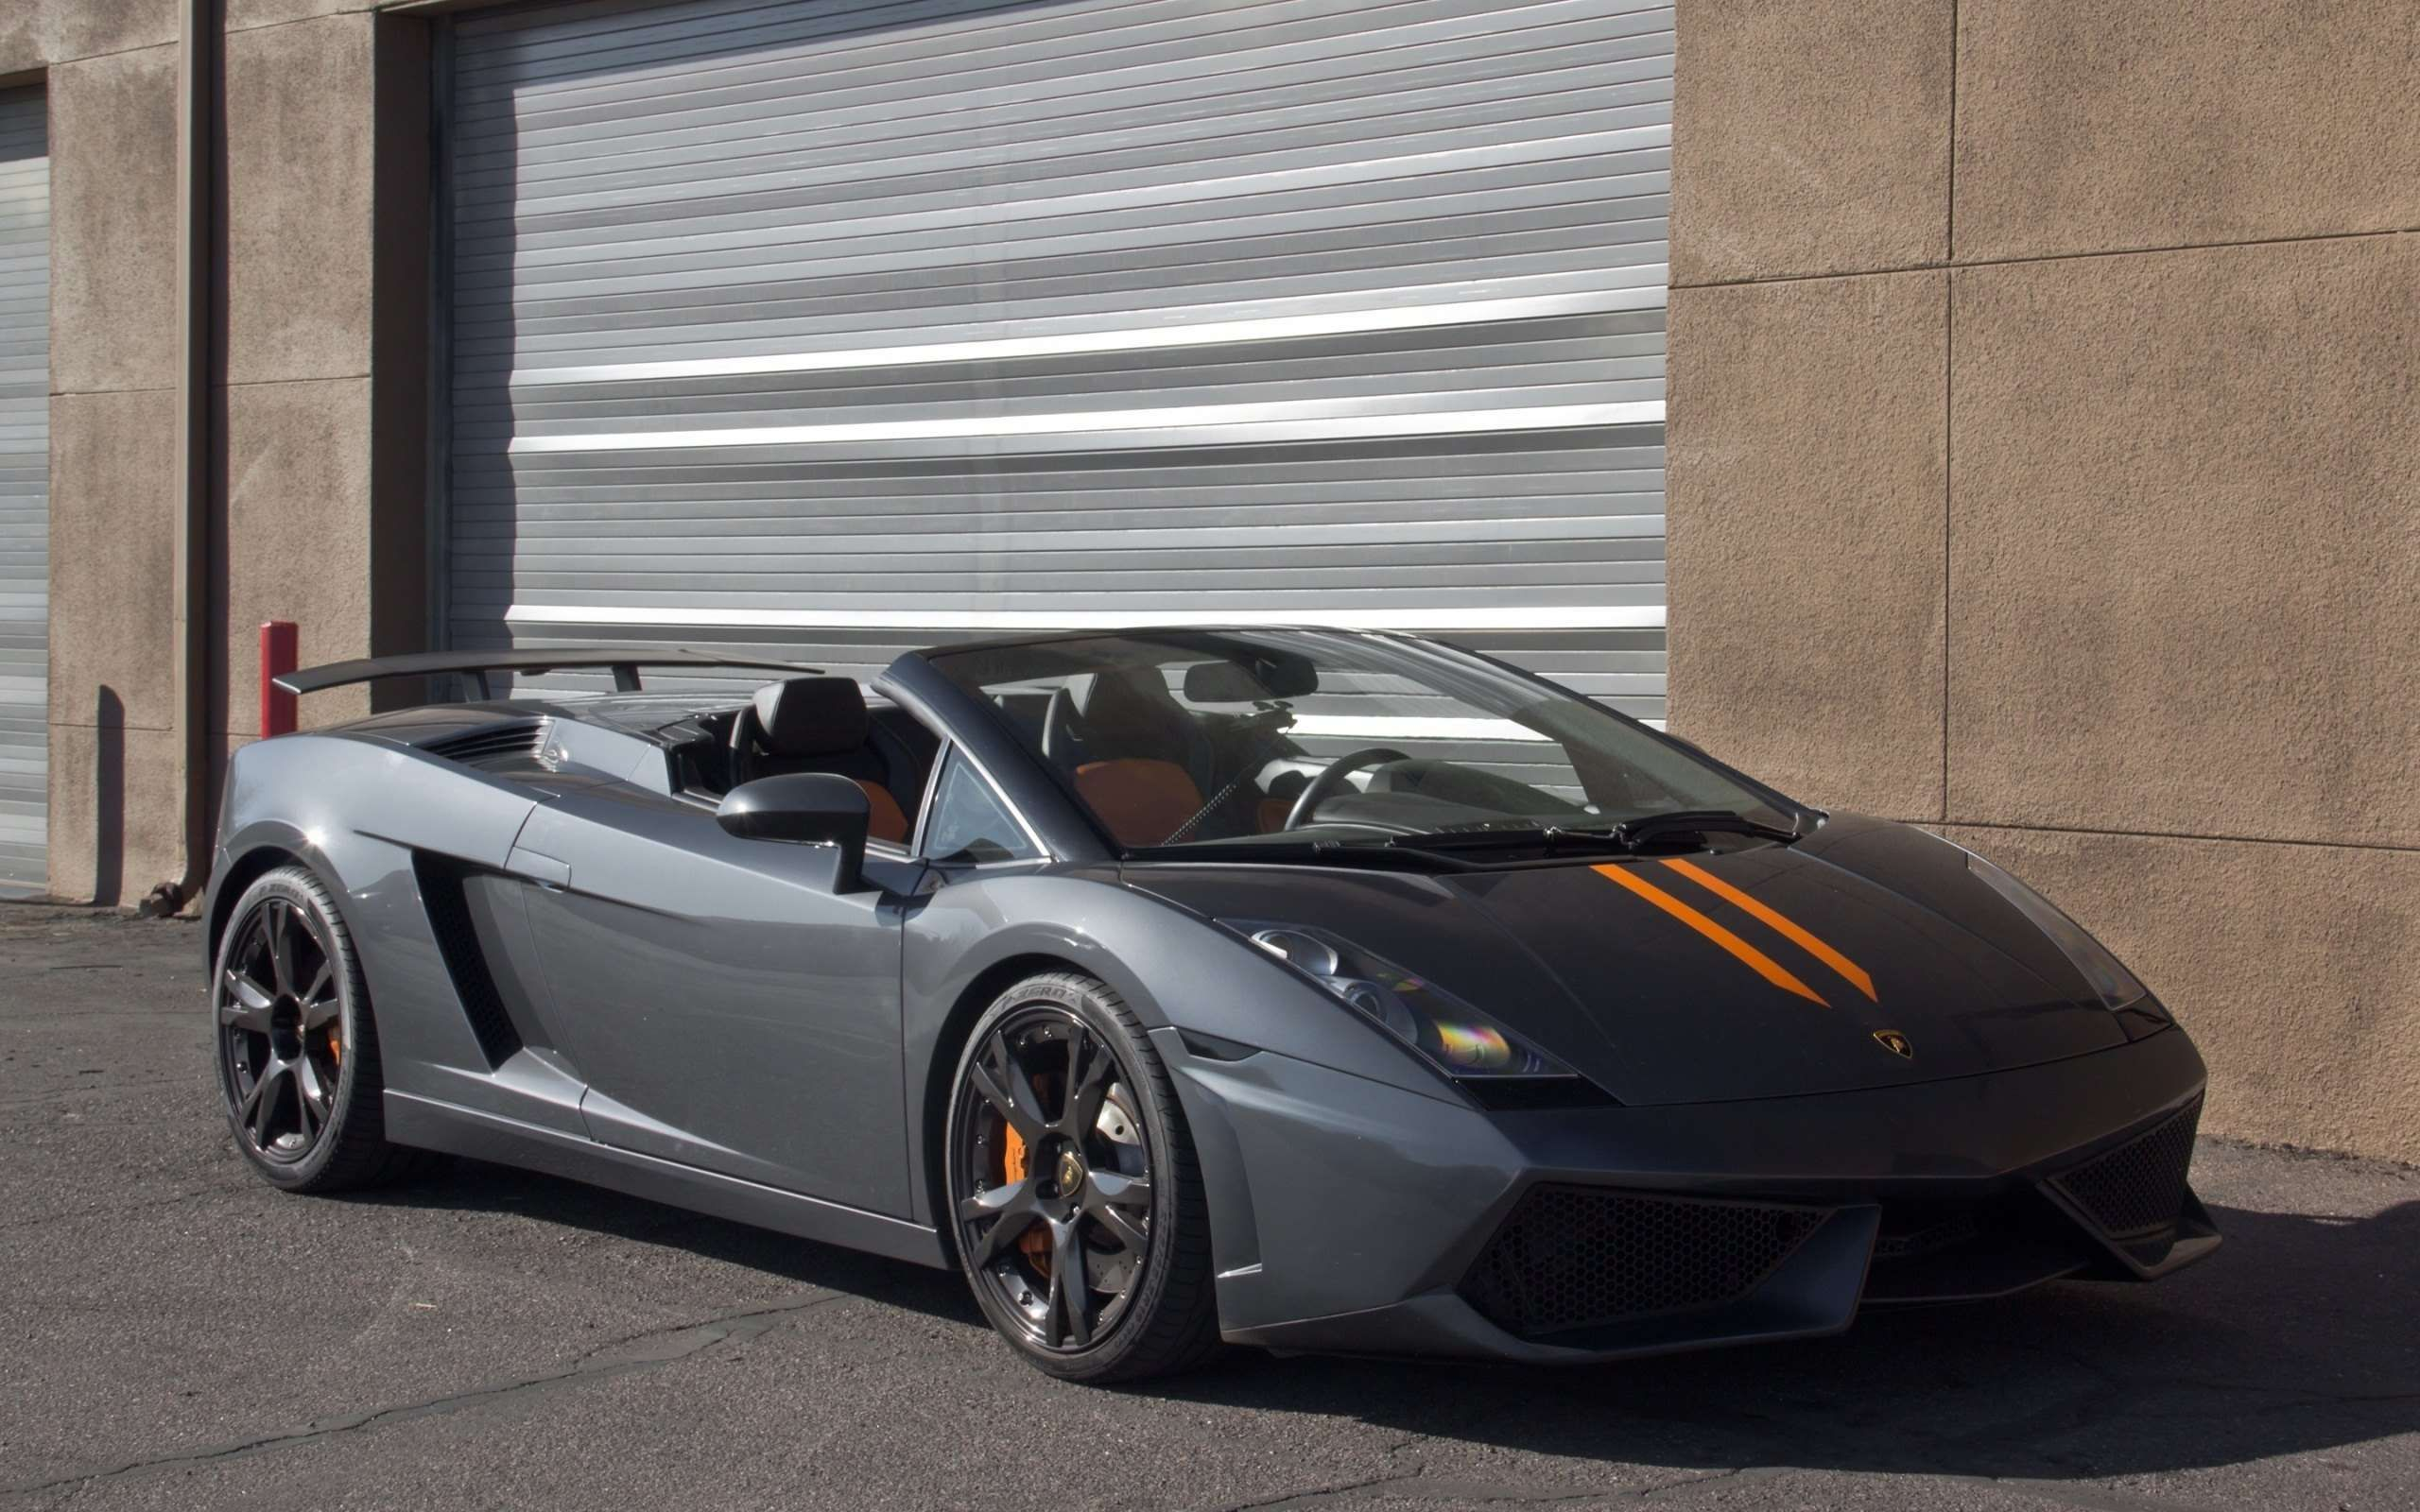 Gray Lamborghini Gallardo With Orange Stripes Wallpaper Hd Widescreen Desktop